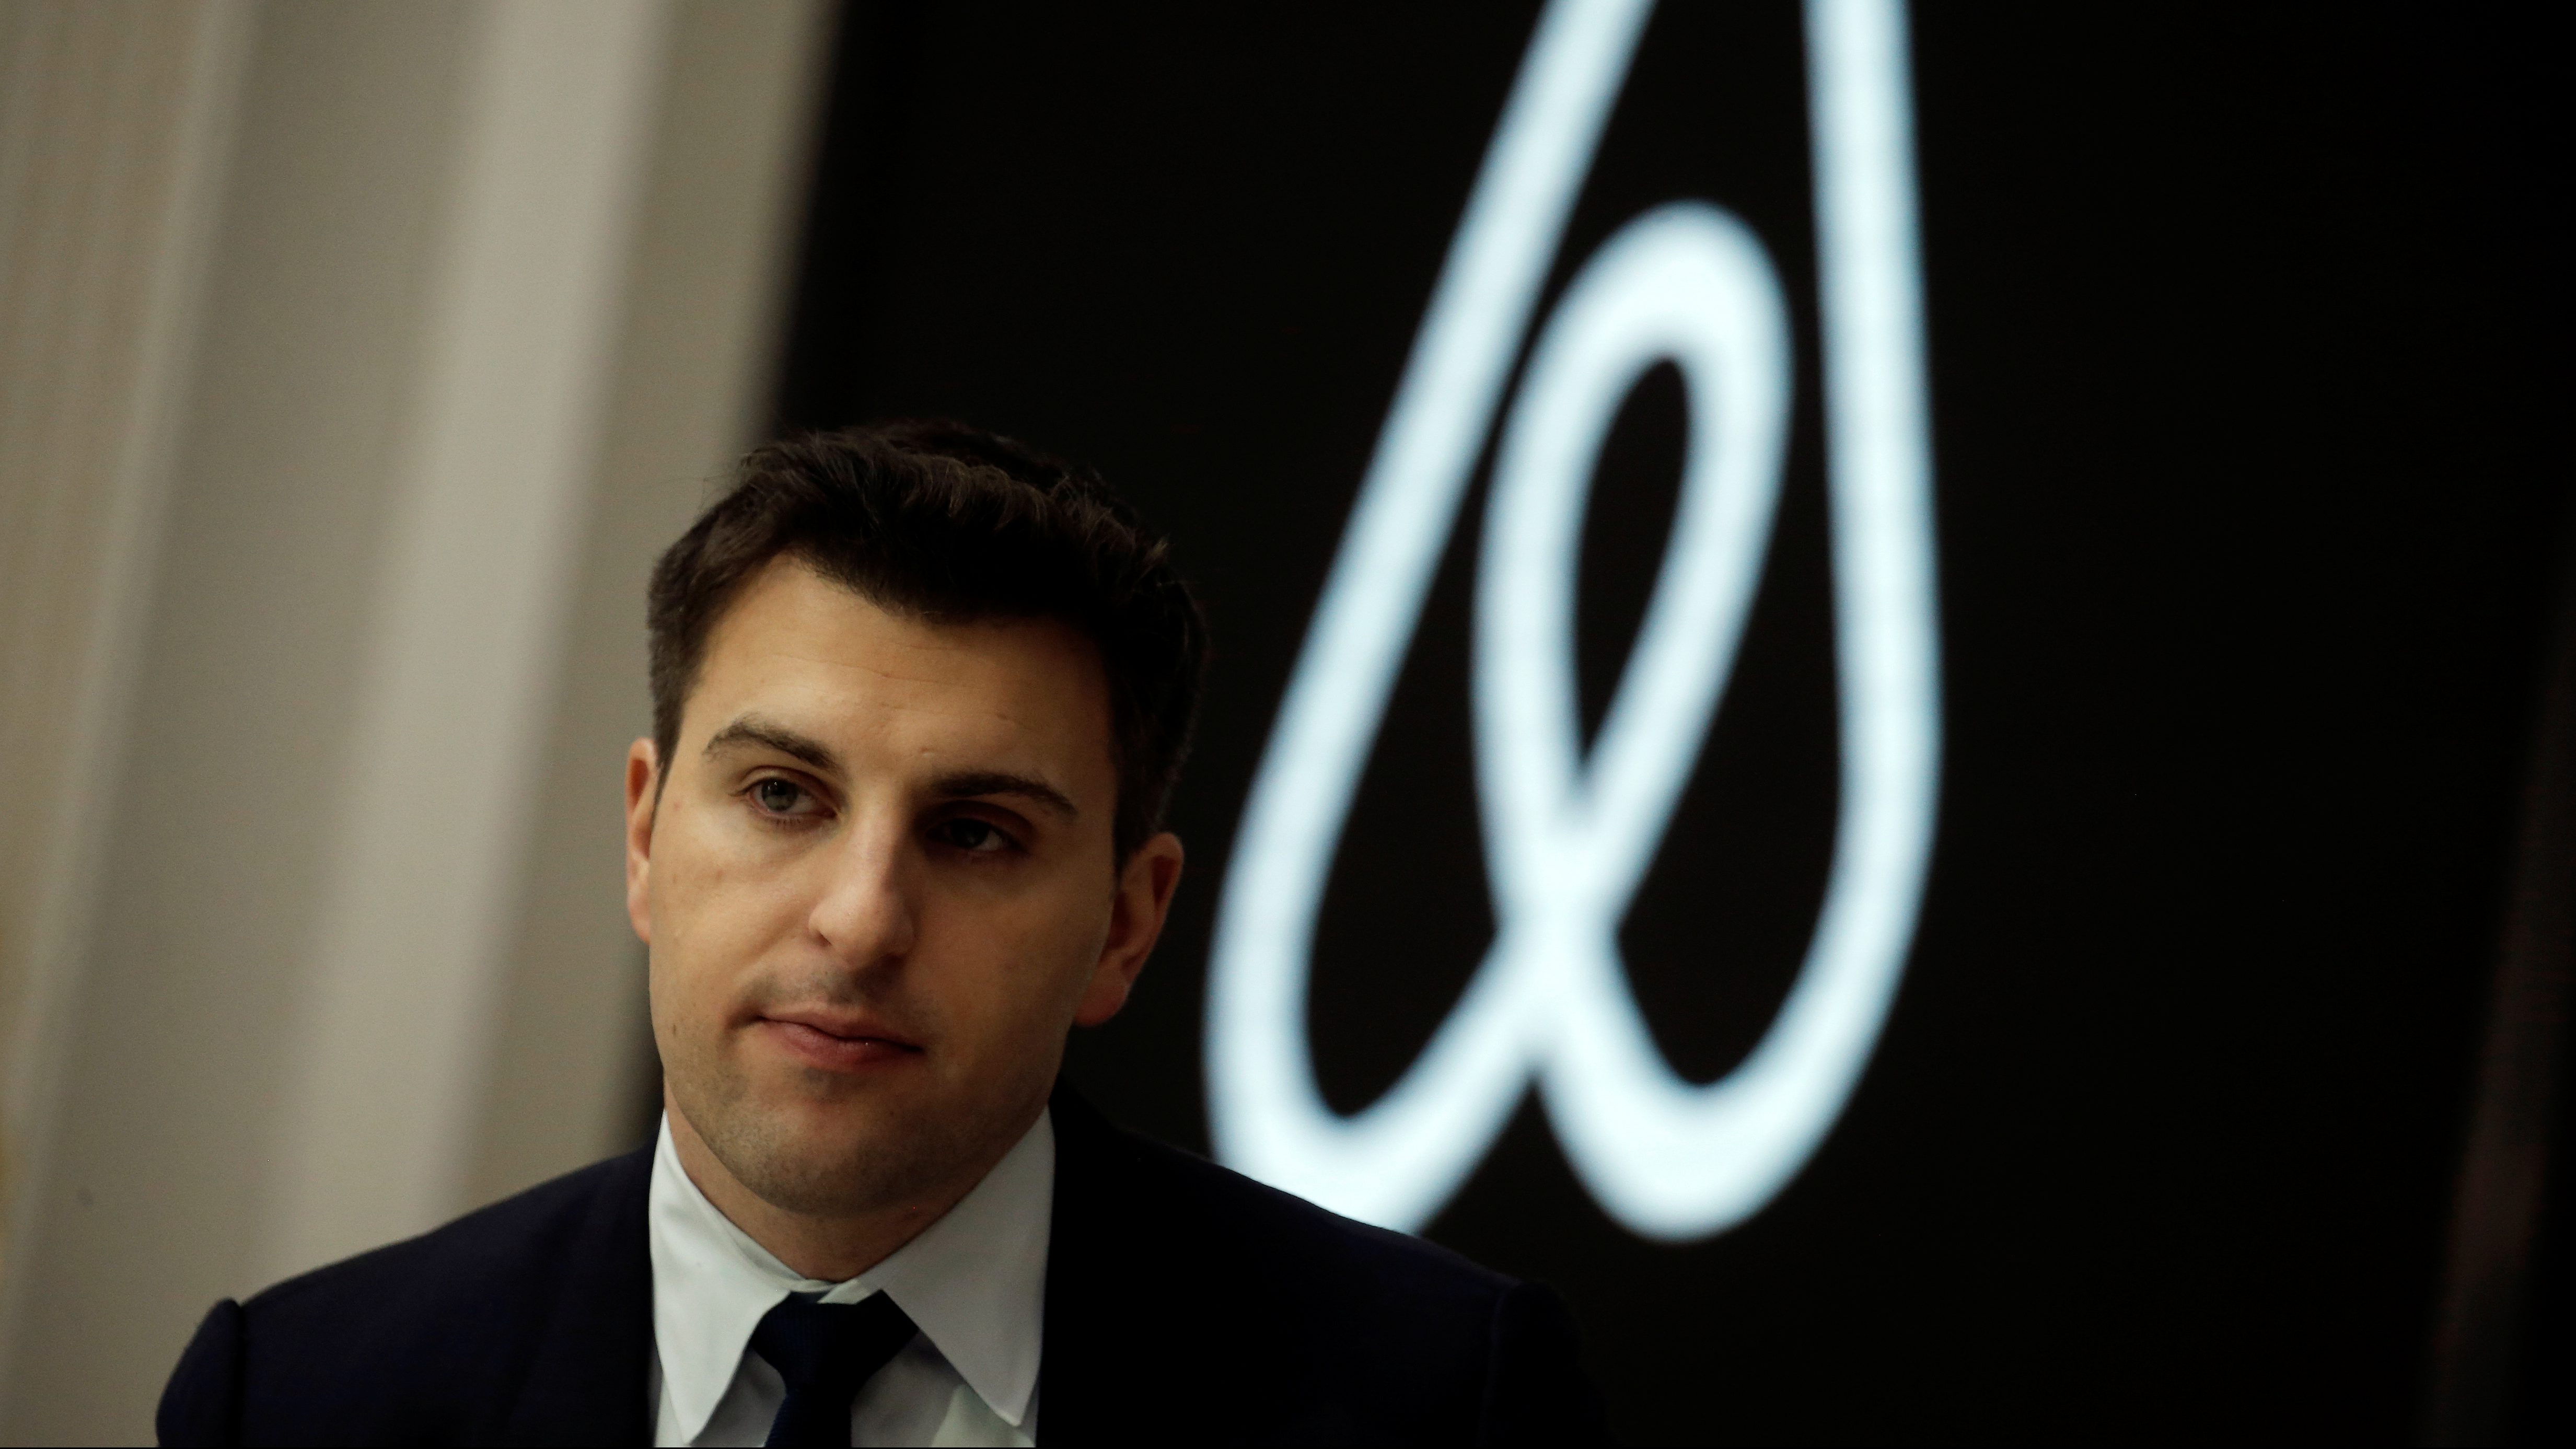 Brian Chesky, CEO and Co-founder of Airbnb, speaks to the Economic Club of New York at a luncheon at the New York Stock Exchange (NYSE) in New York, U.S. March 13, 2017. REUTERS/Mike Segar - RC1B840C5ED0